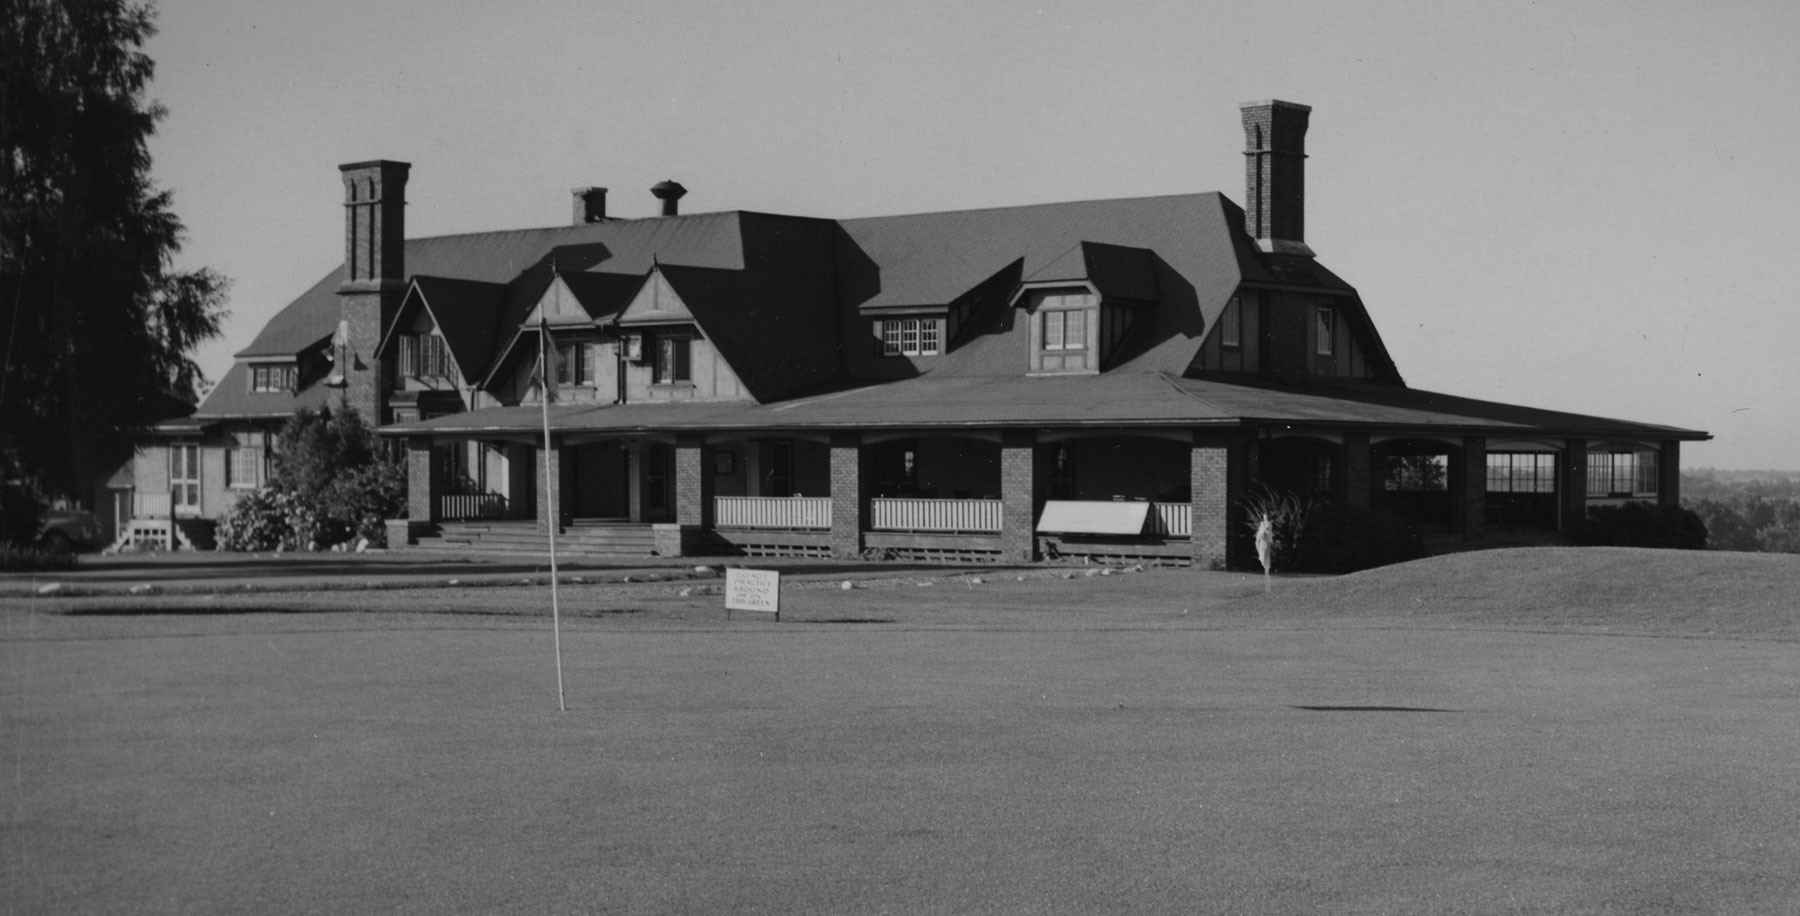 Brantford Golf and Country Club clubhouse from the early 1950s.  Image courtesy of the Brant Historical Society